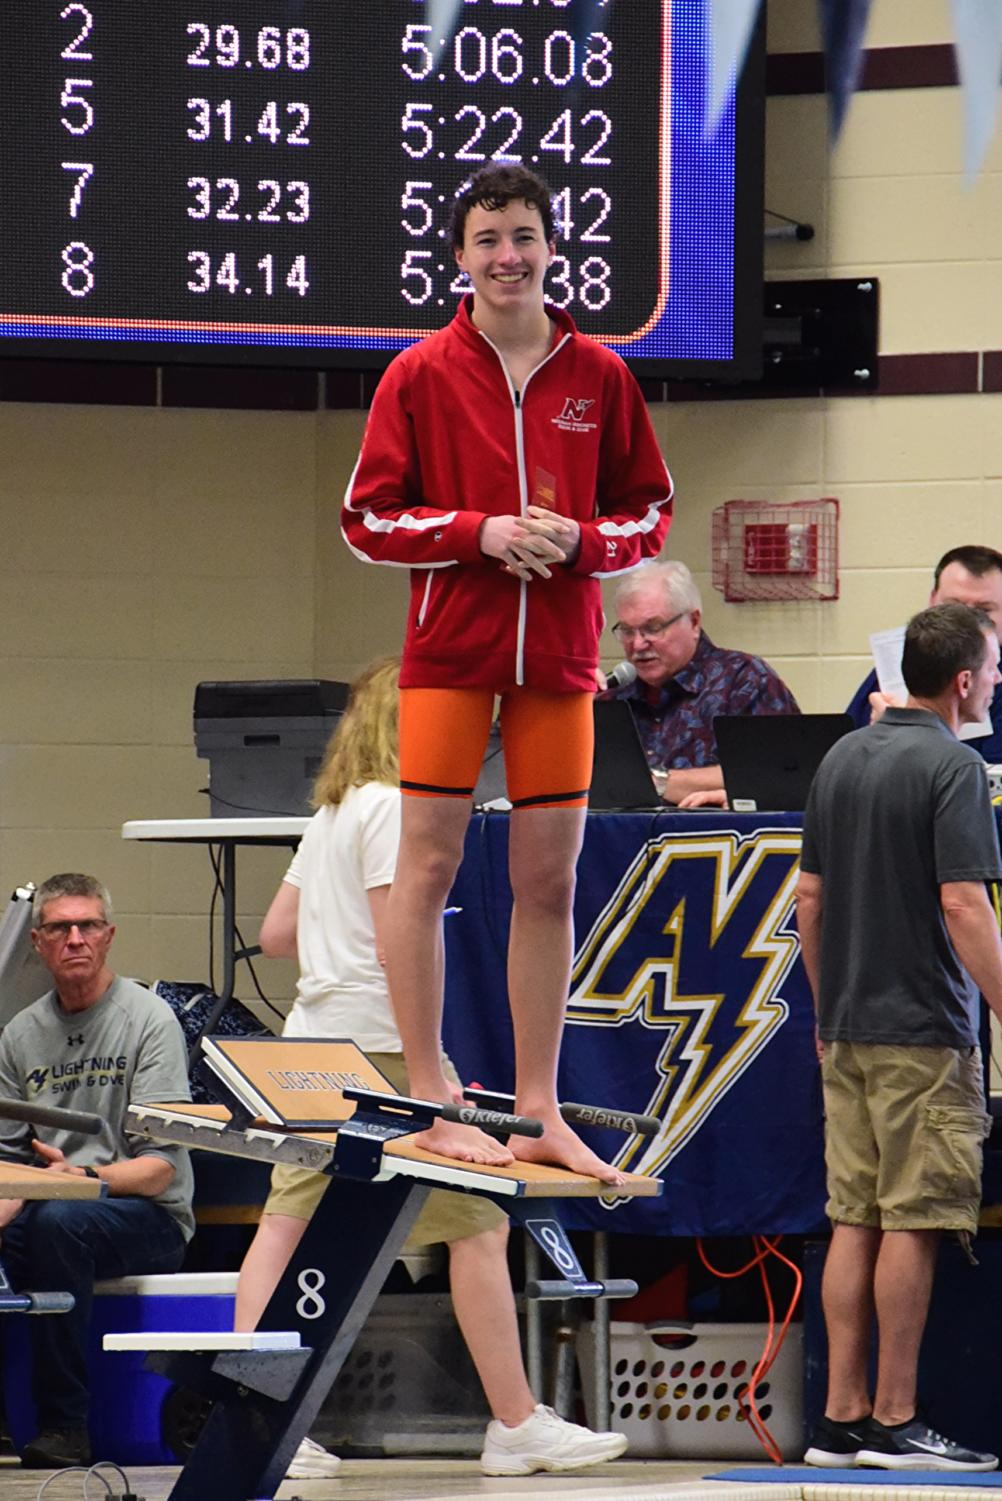 Tony Van Sambeek stands on the block receiving a ribbon for his 8th place finish at the FVA conference meet.